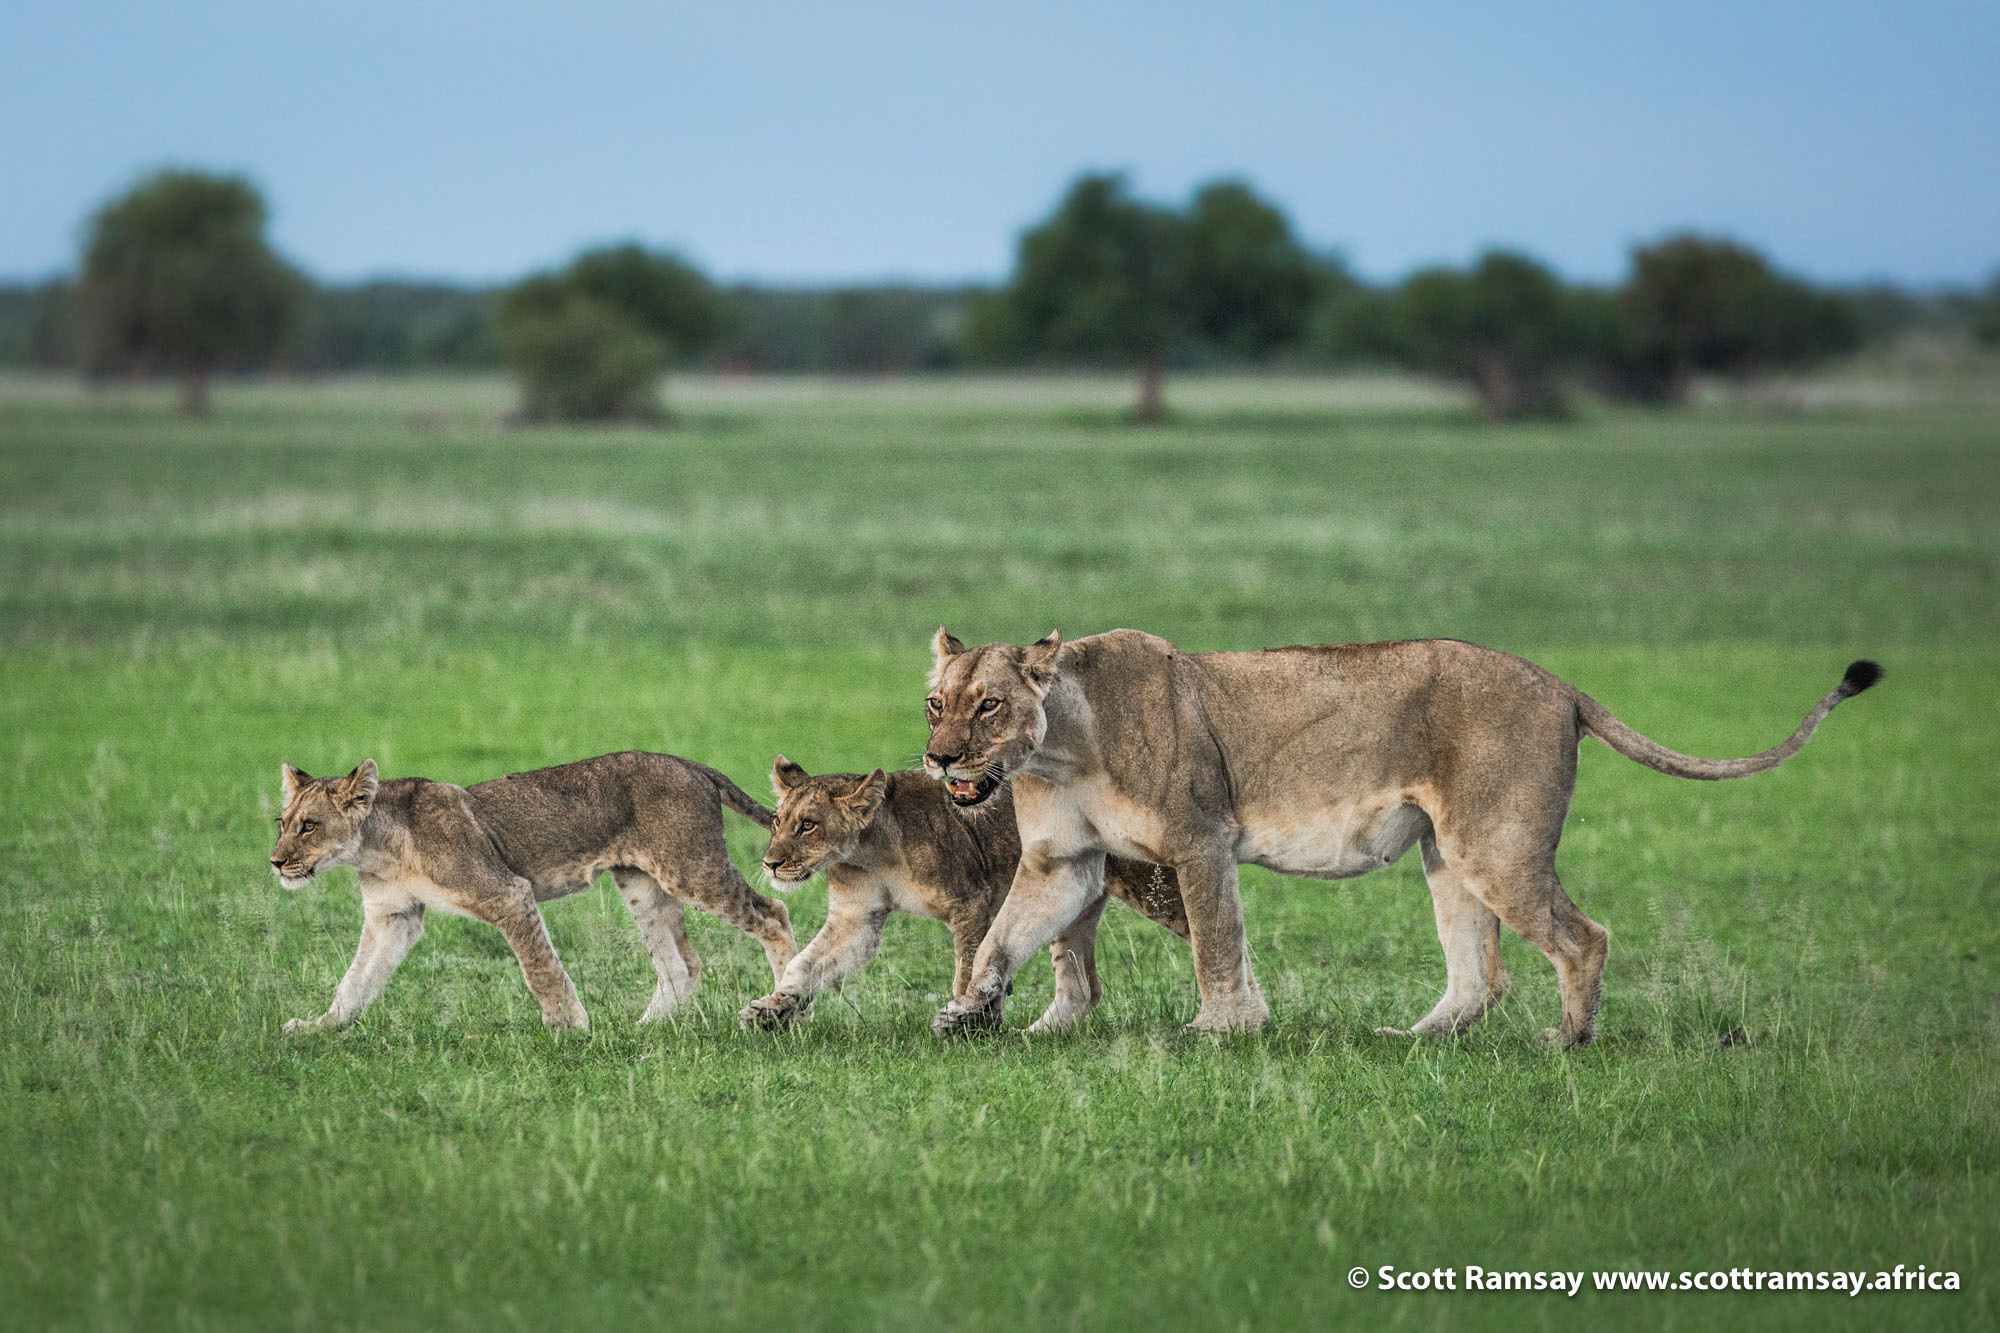 The Central Kalahari Game Reserve in Botswana is home to between 150 and 300 lions, some of the last free-roaming wild lions in Africa (there are no more than 20 000 left on the continent). The 52 000 square kilometre reserve is still largely inaccessible, undeveloped and free of mass tourism or fancy lodges. It's a place where one can still camp alone without any humans for 100 kilometres in any direction. Long may it remain so.